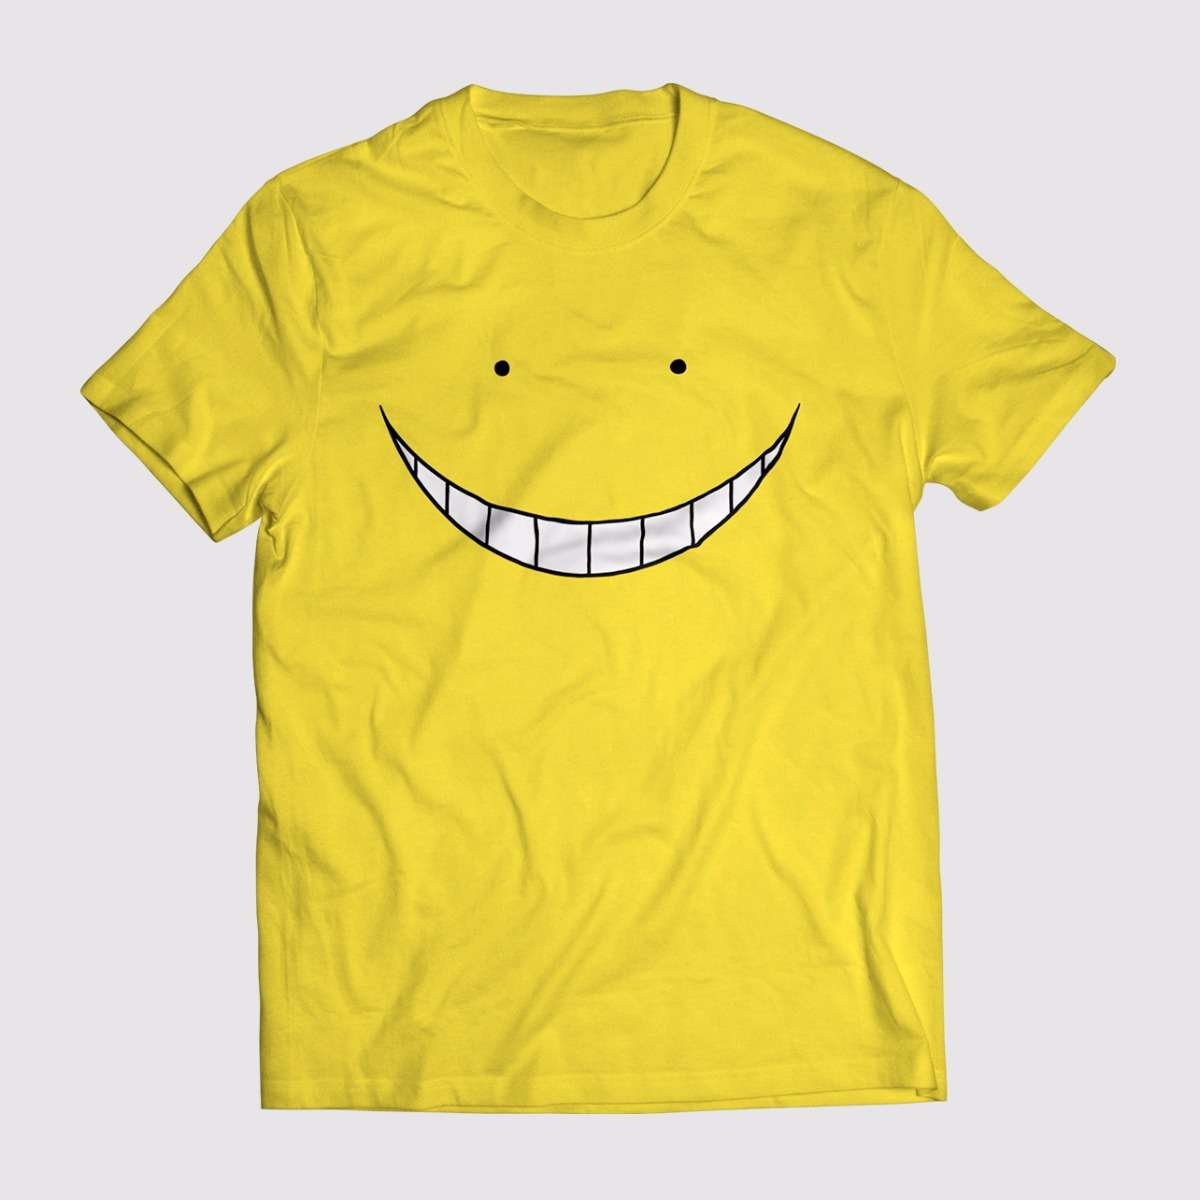 T-Shirt - Koro Sensei apparel